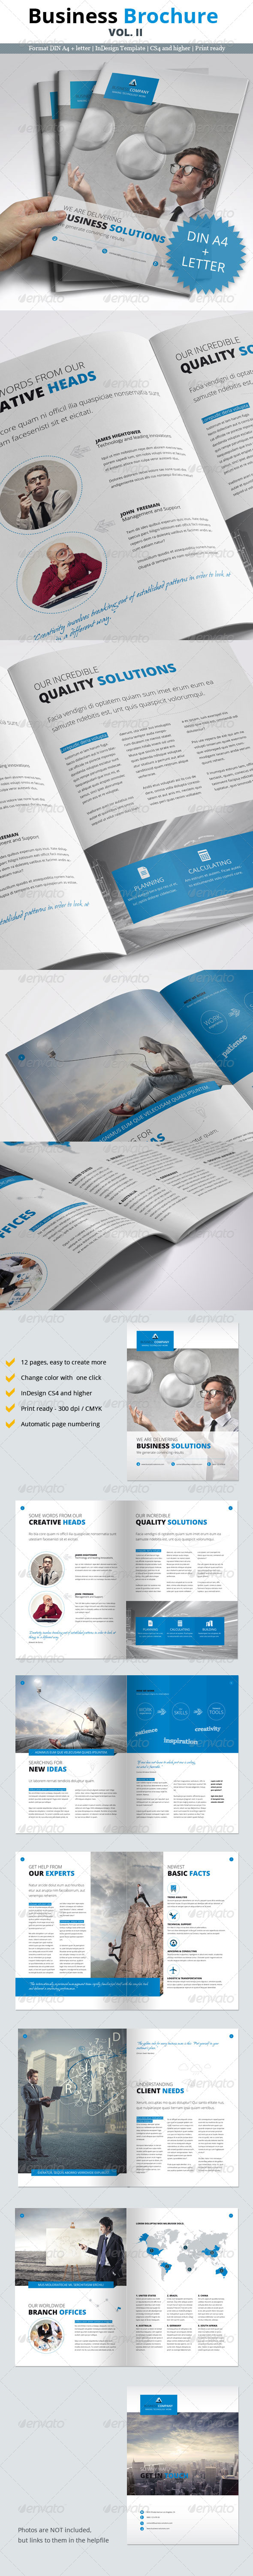 12 Page Business Brochure Vol. II - Corporate Brochures